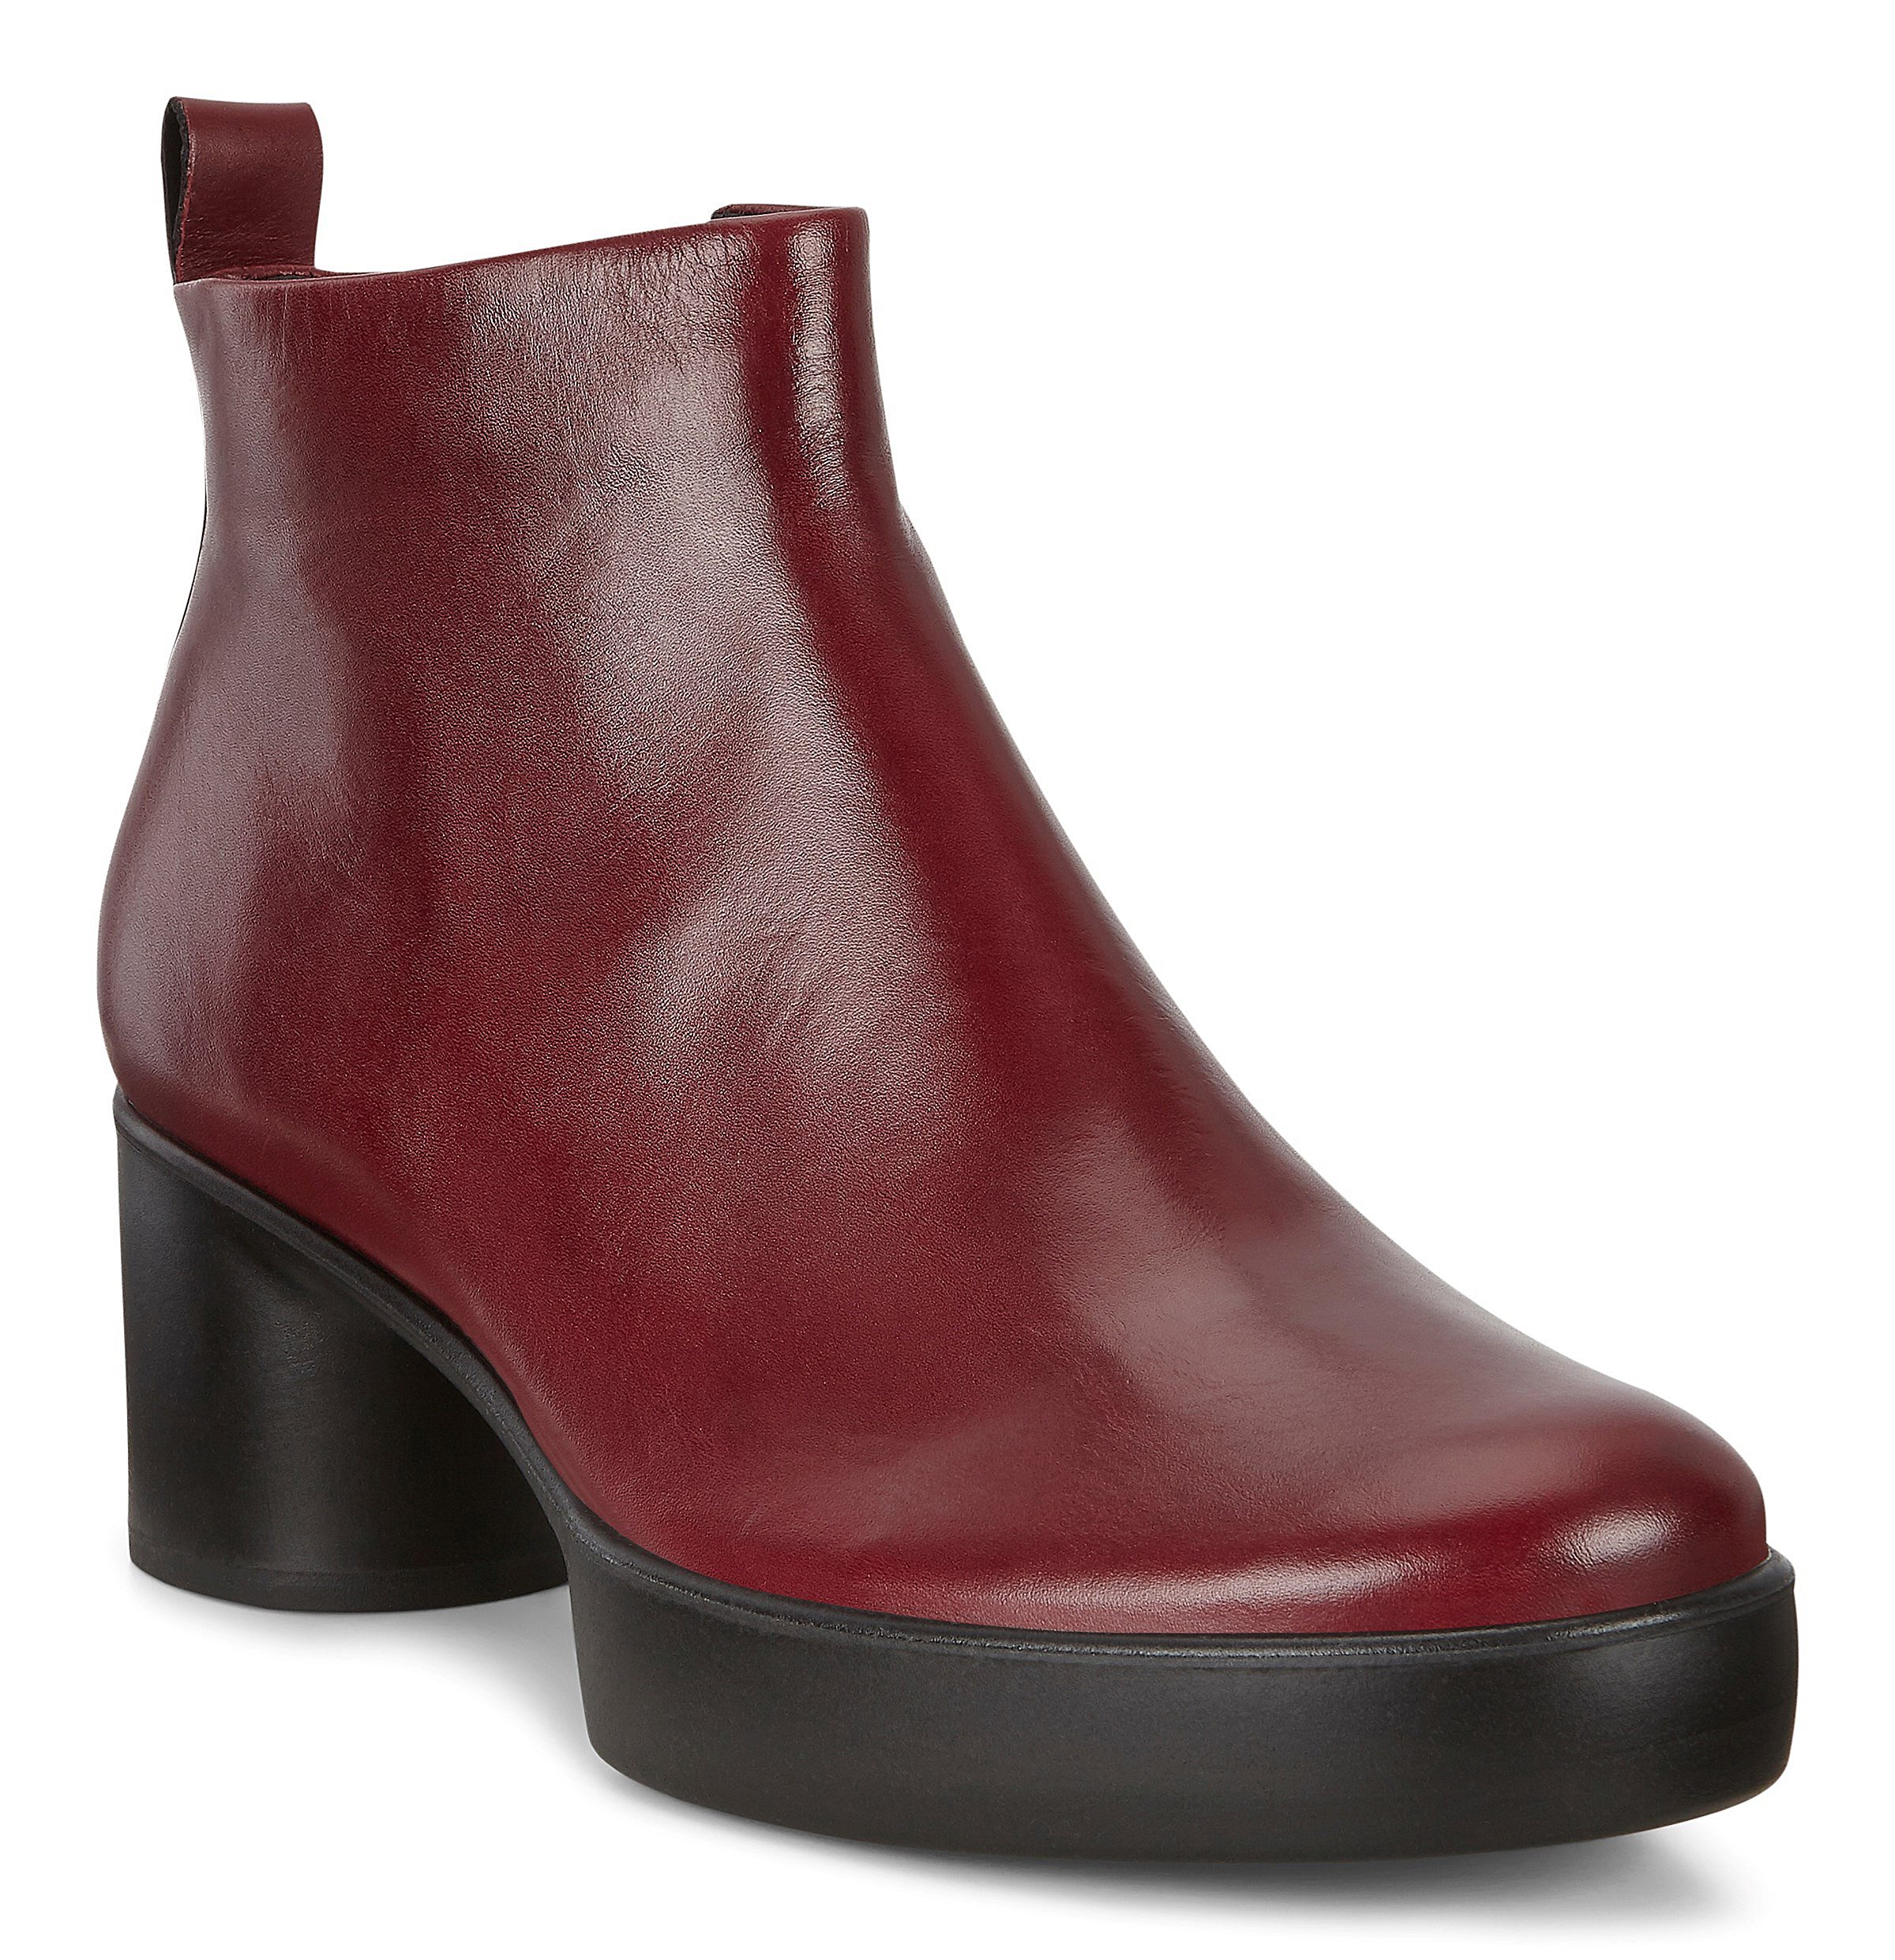 Women's Boots | Buy from the Official